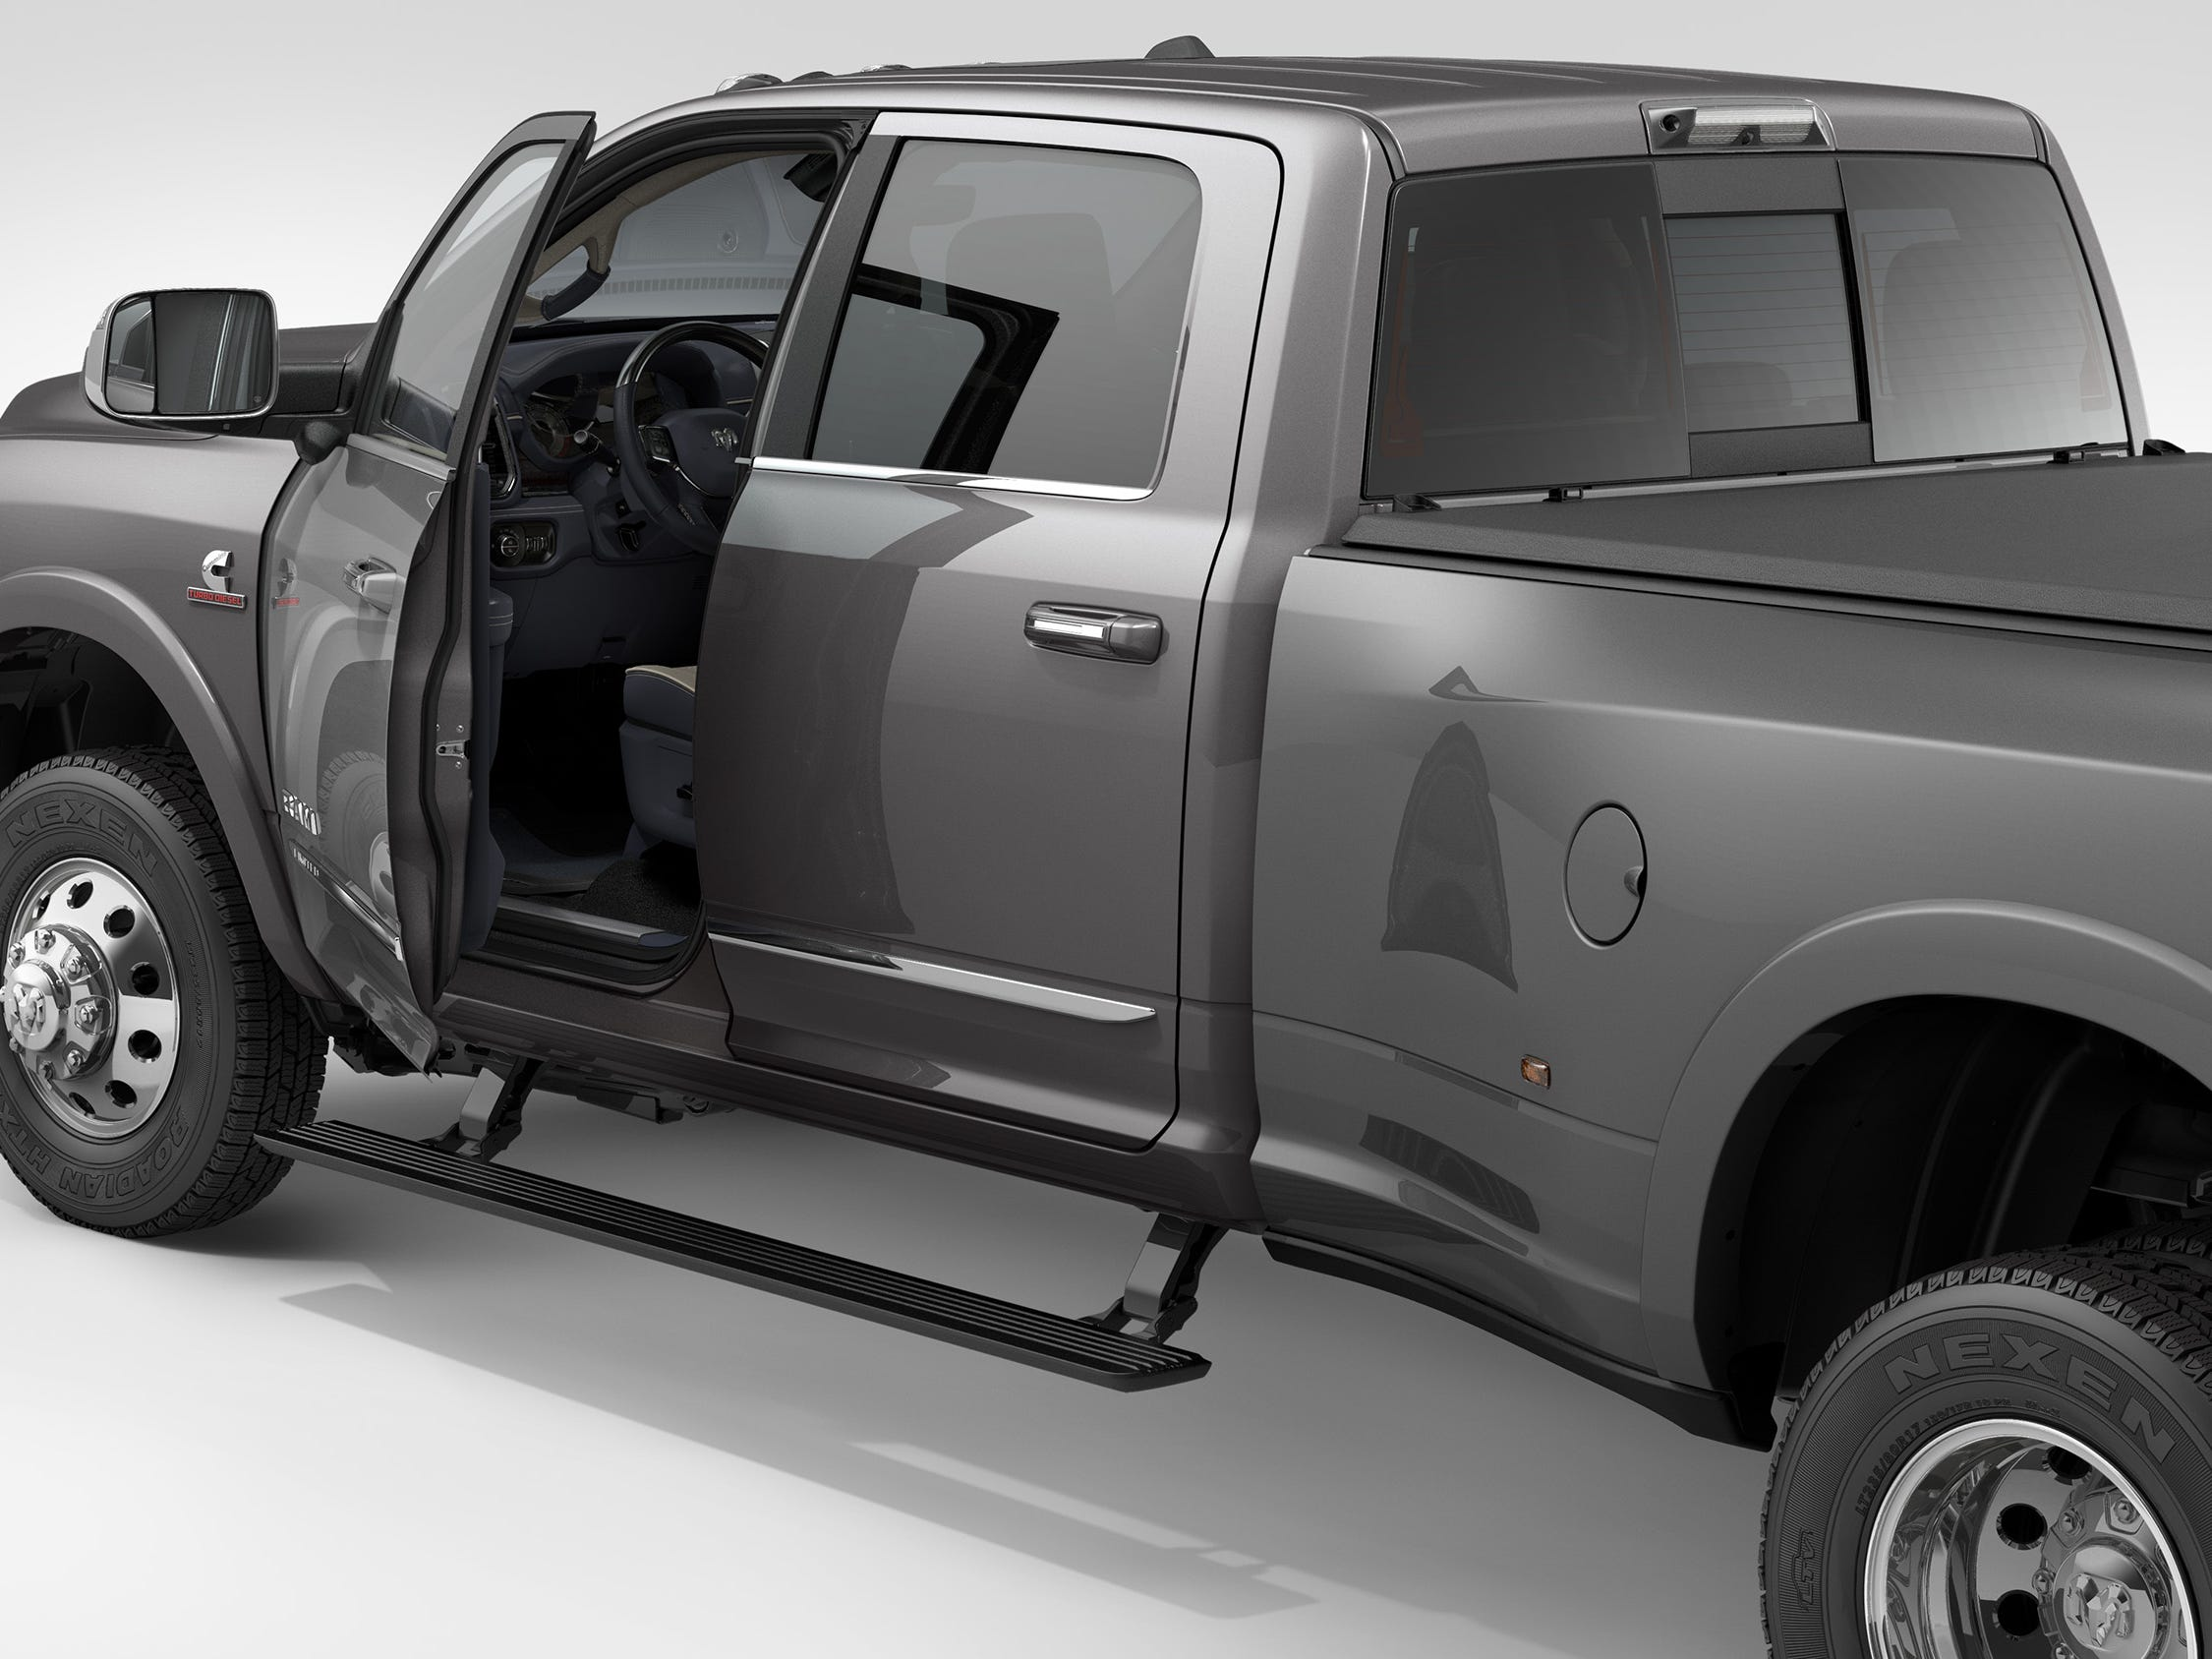 The 2019 Ram Heavy Duty with power side steps